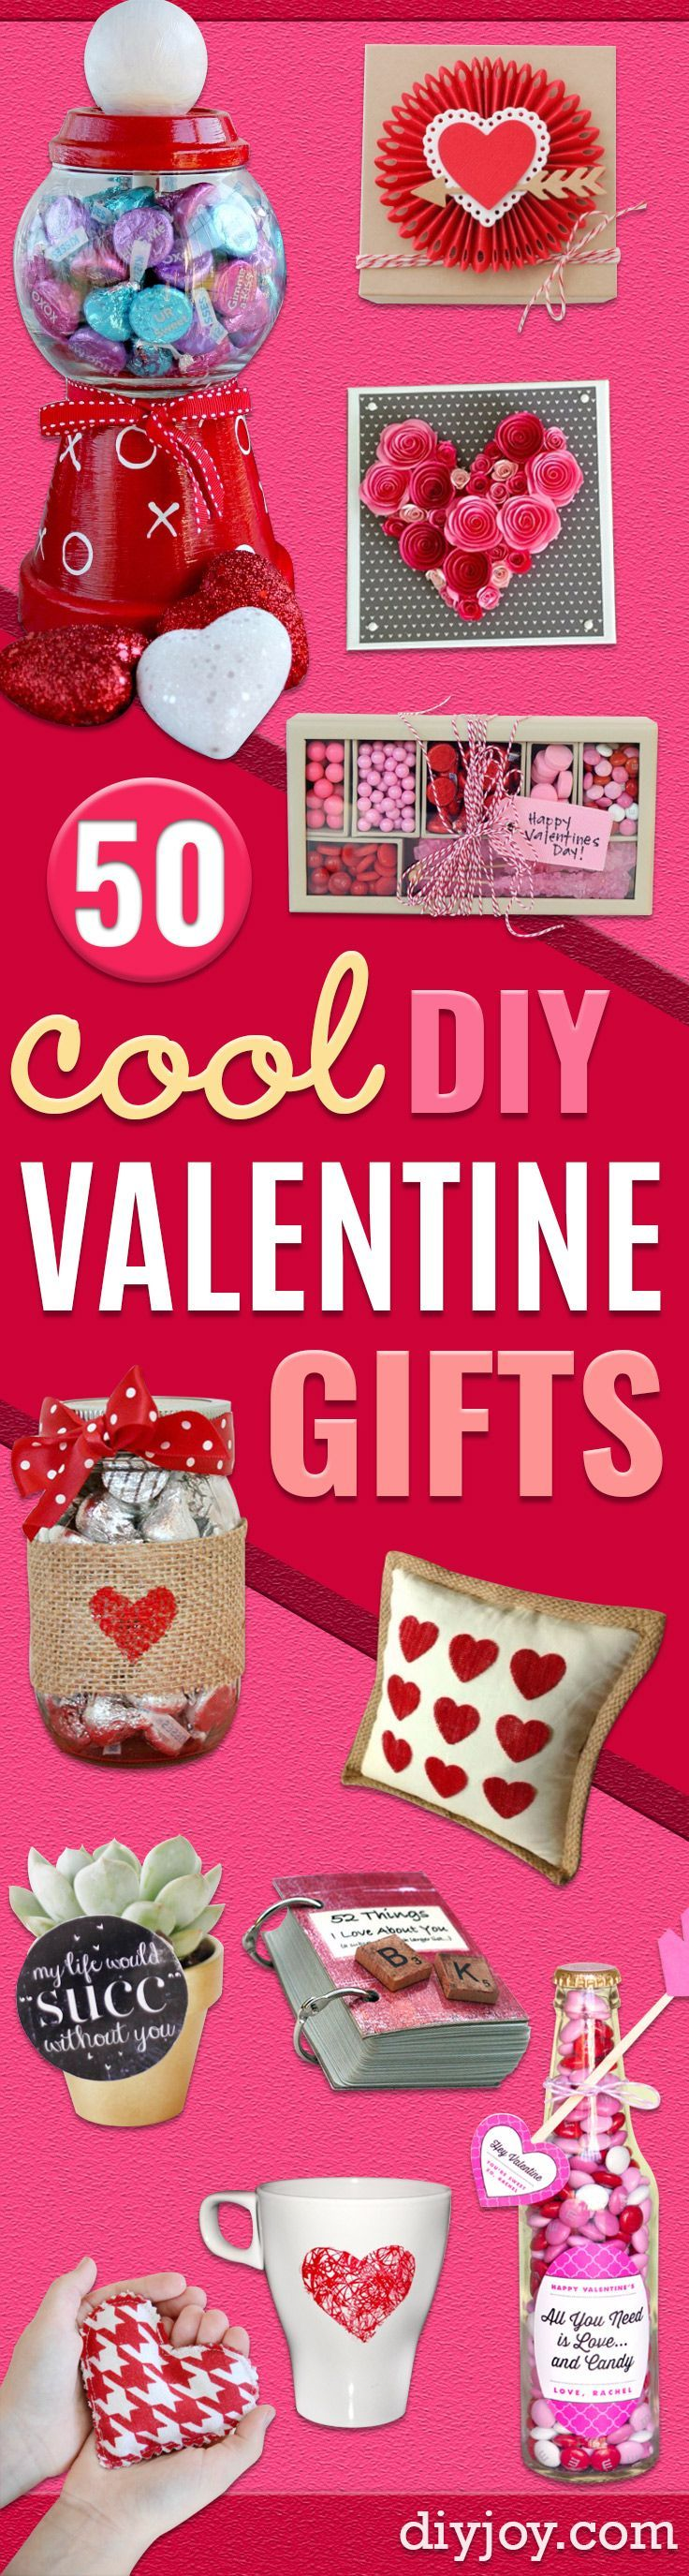 Cool And Easy Diy ValentineS Day Gifts  Boyfriend Girlfriend